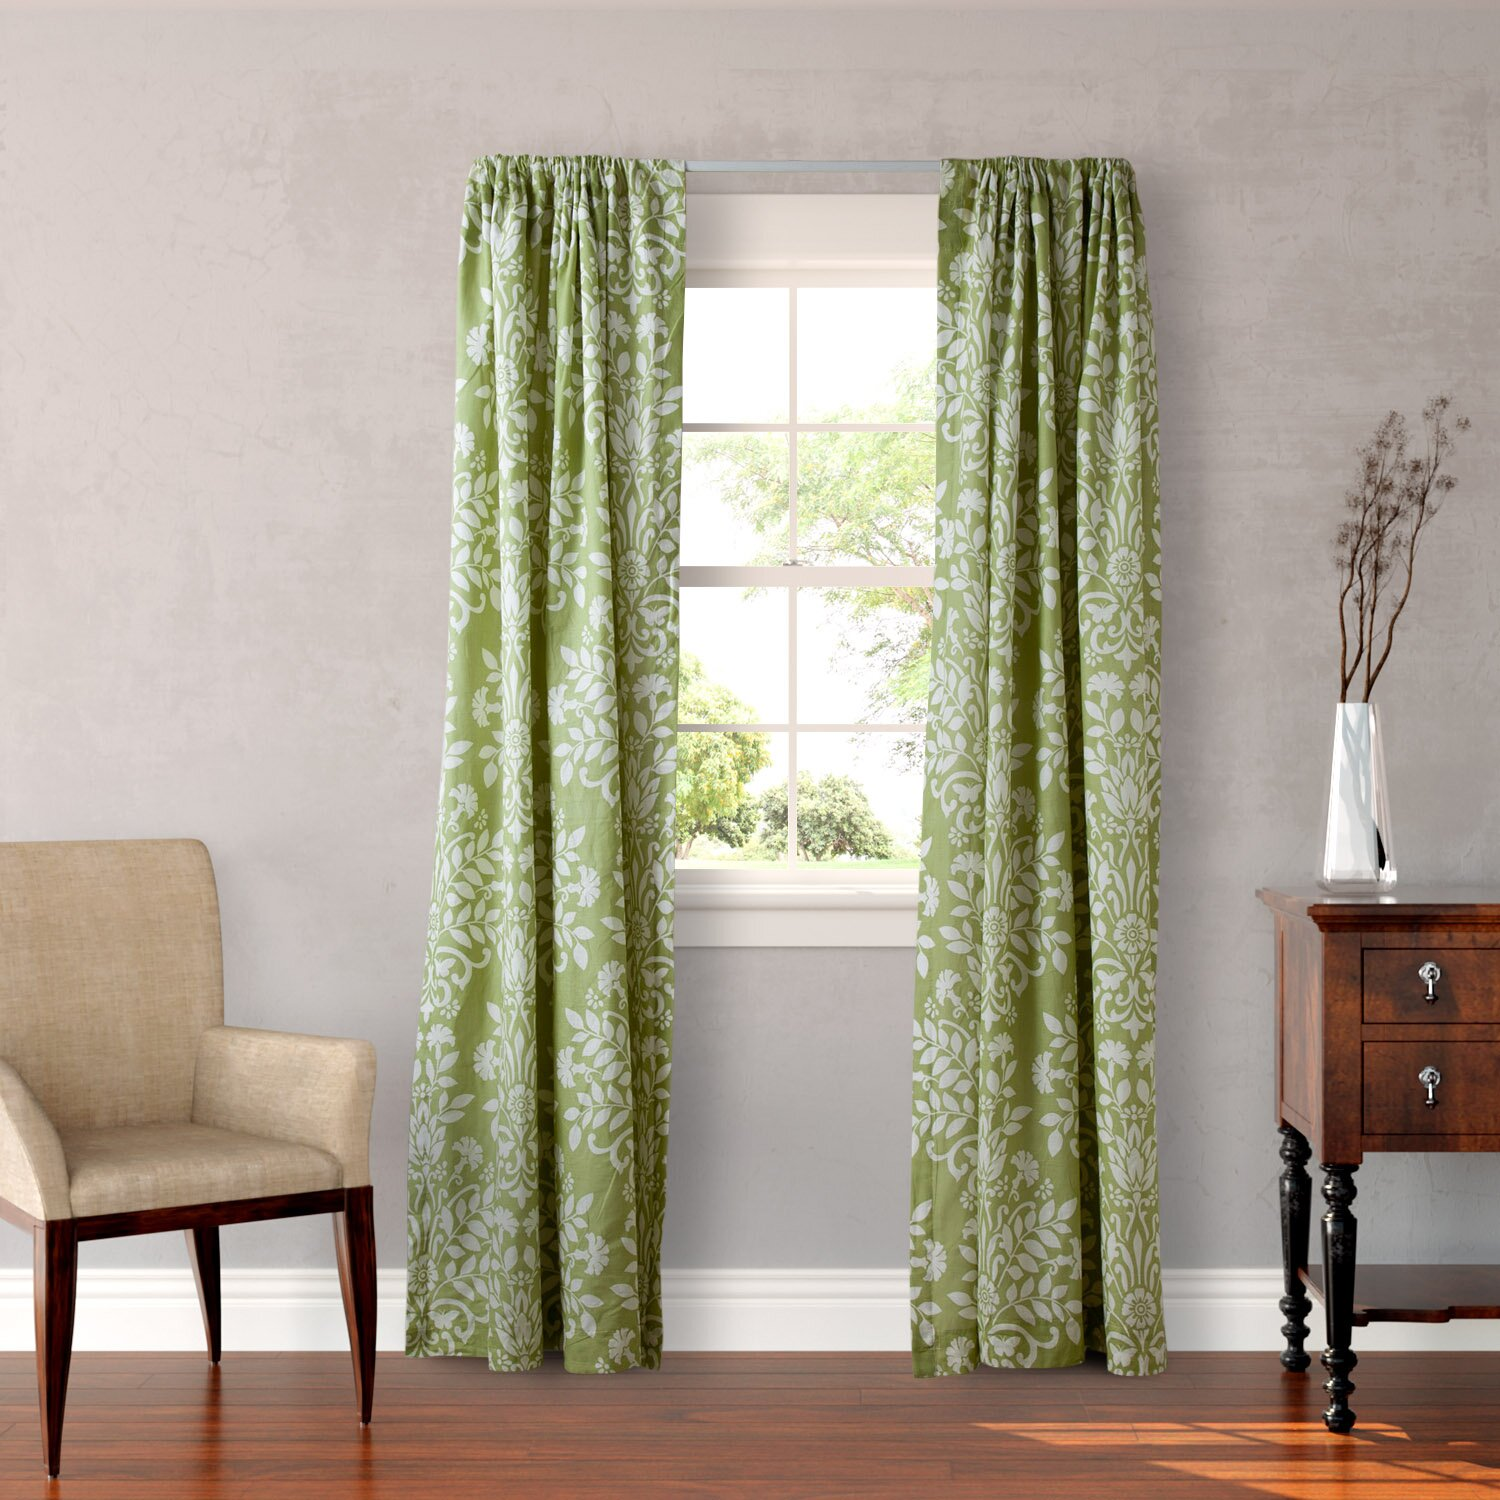 Laura Ashley Home Rowland Curtain Panels & Reviews